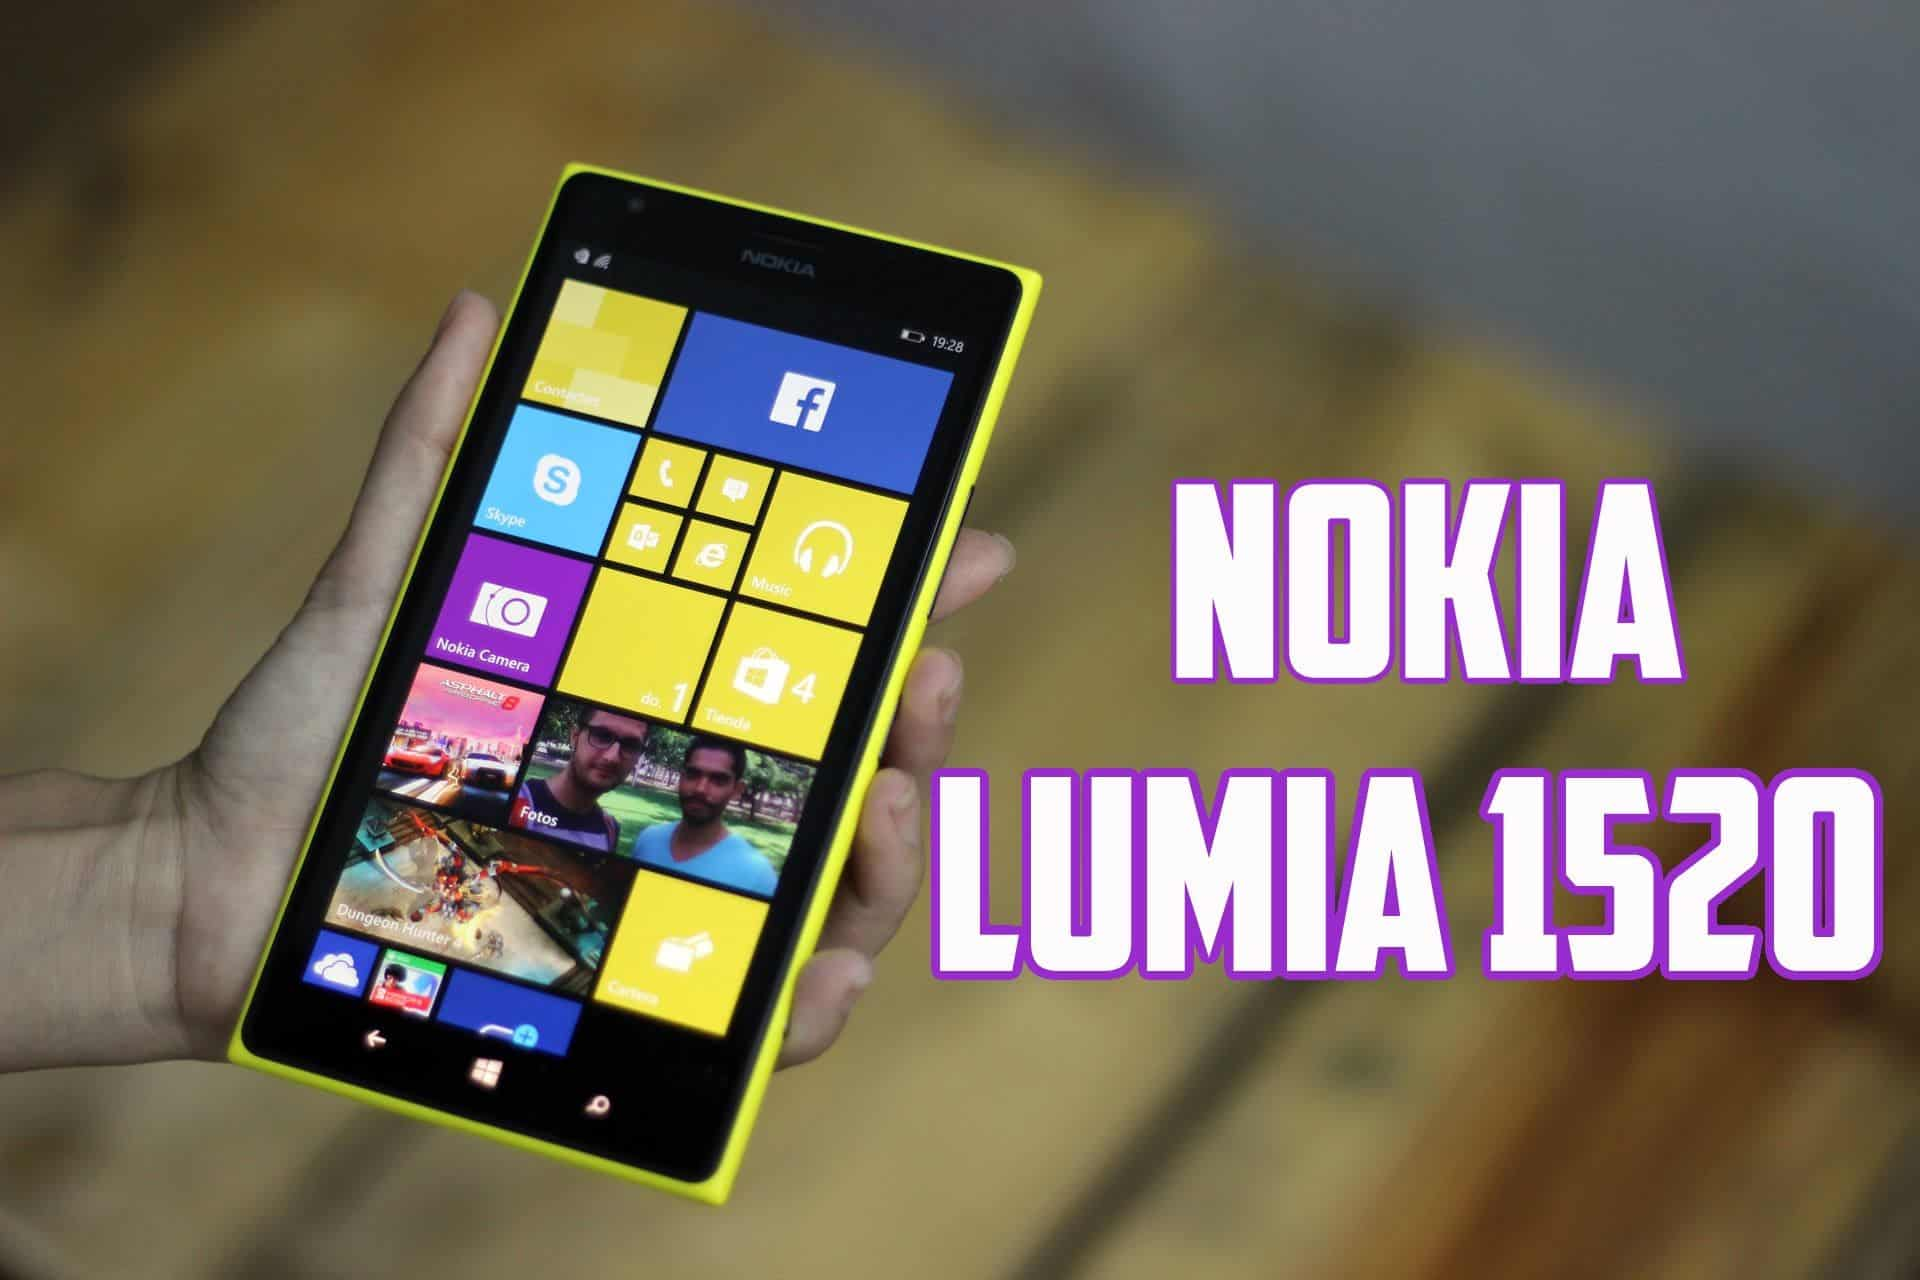 amazon Nokia Lumia 1520 reviews Nokia Lumia 1520 on amazon newest Nokia  Lumia 1520 prices of